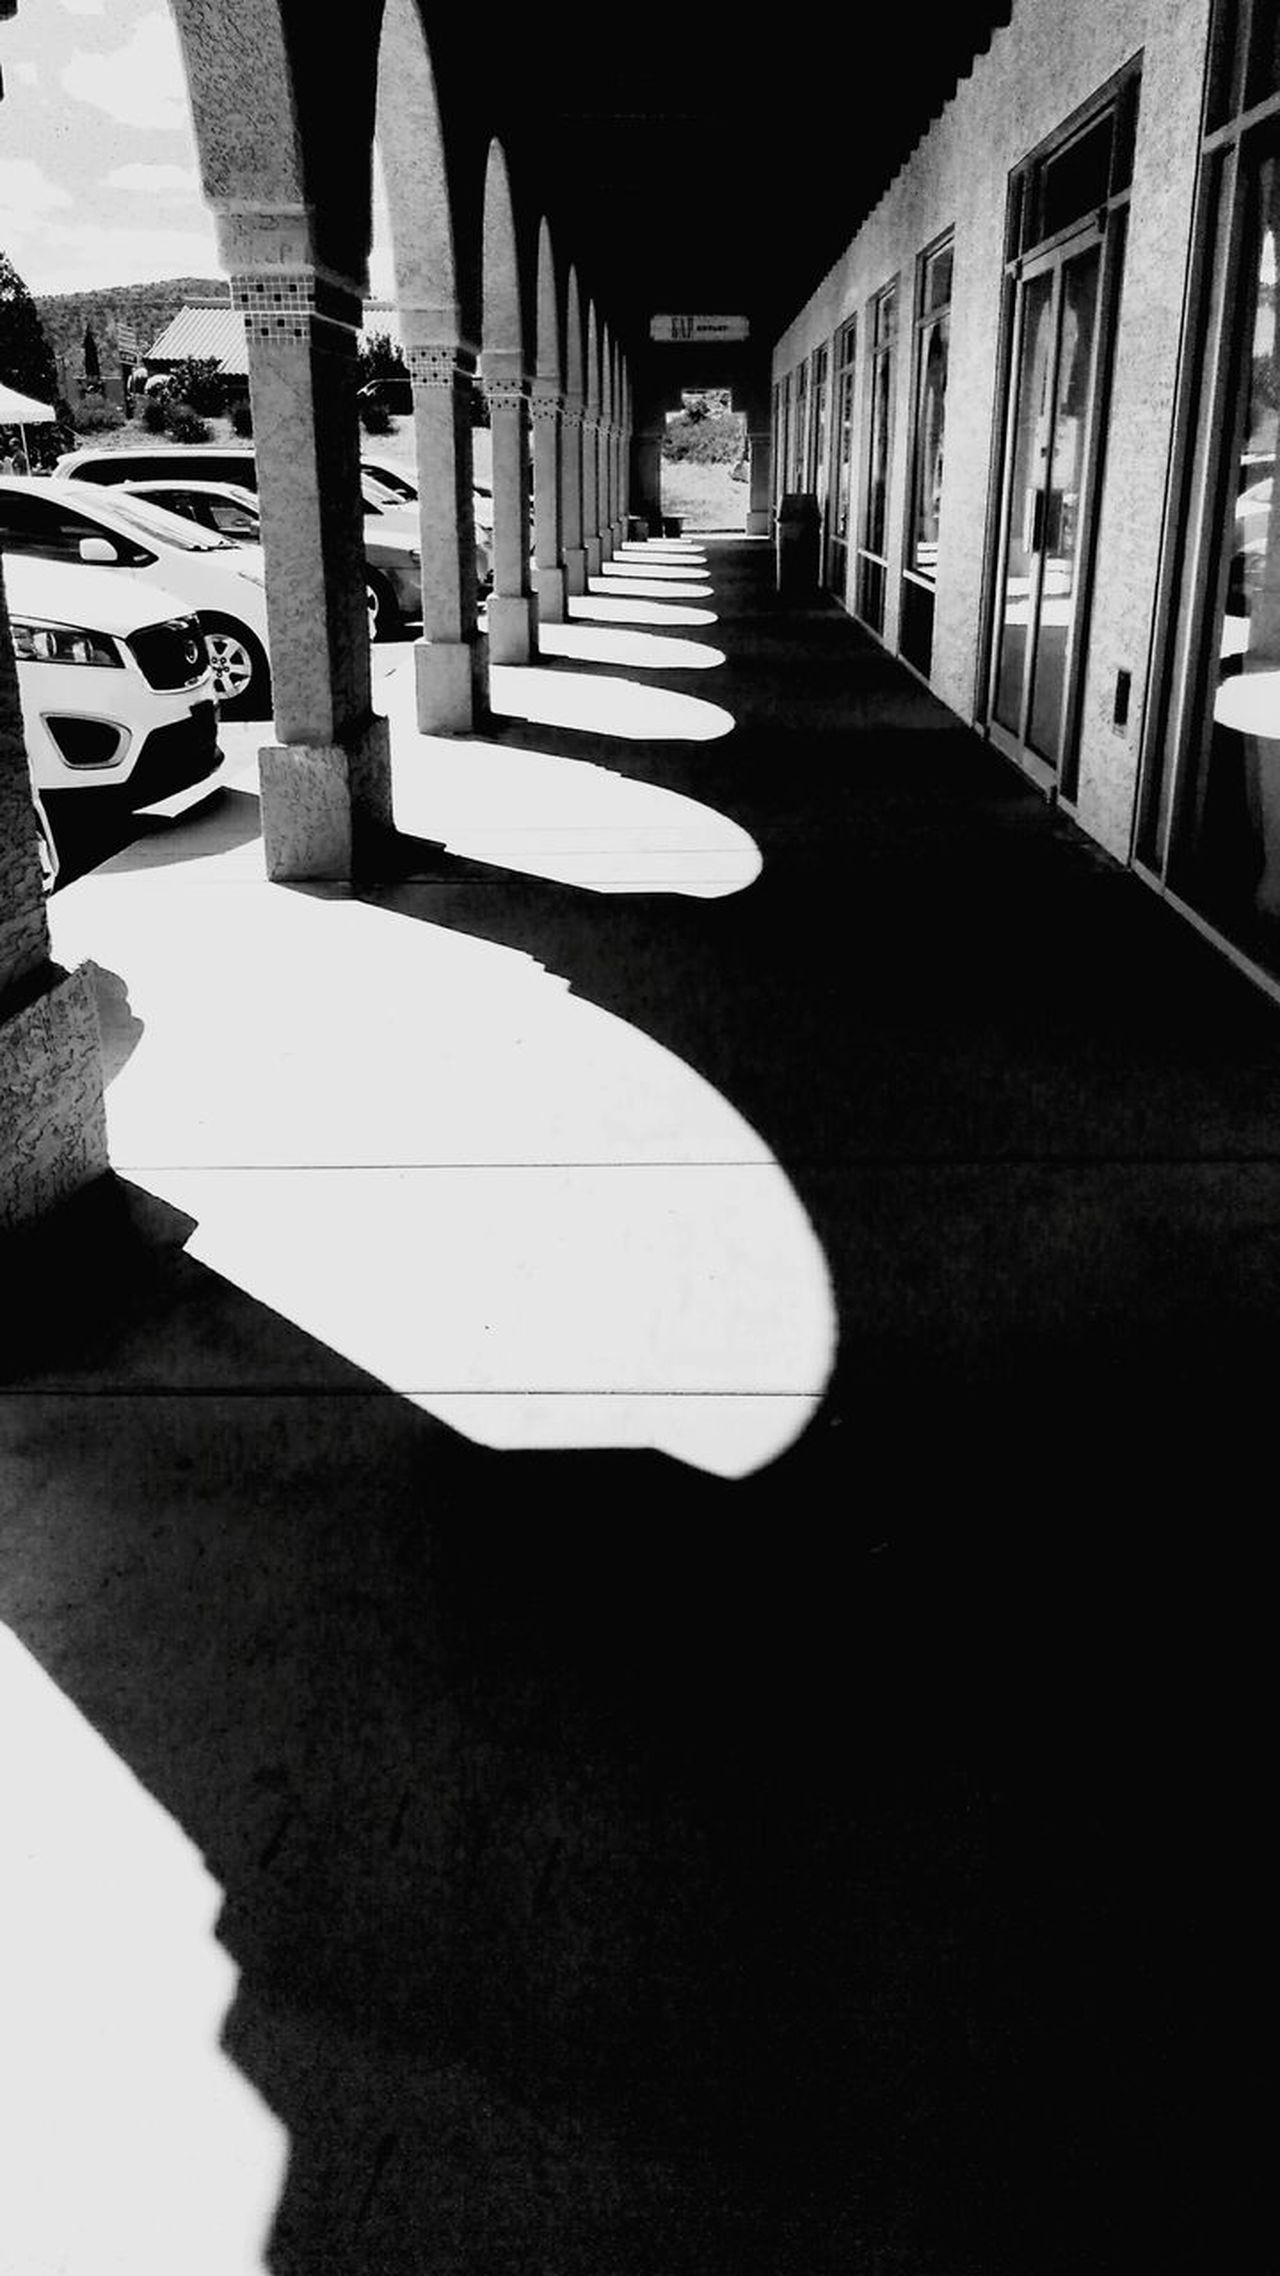 Shadow No People The Way Forward Outdoors Day Blackandwhite Welcome To Black The Architect - 2017 EyeEm Awards